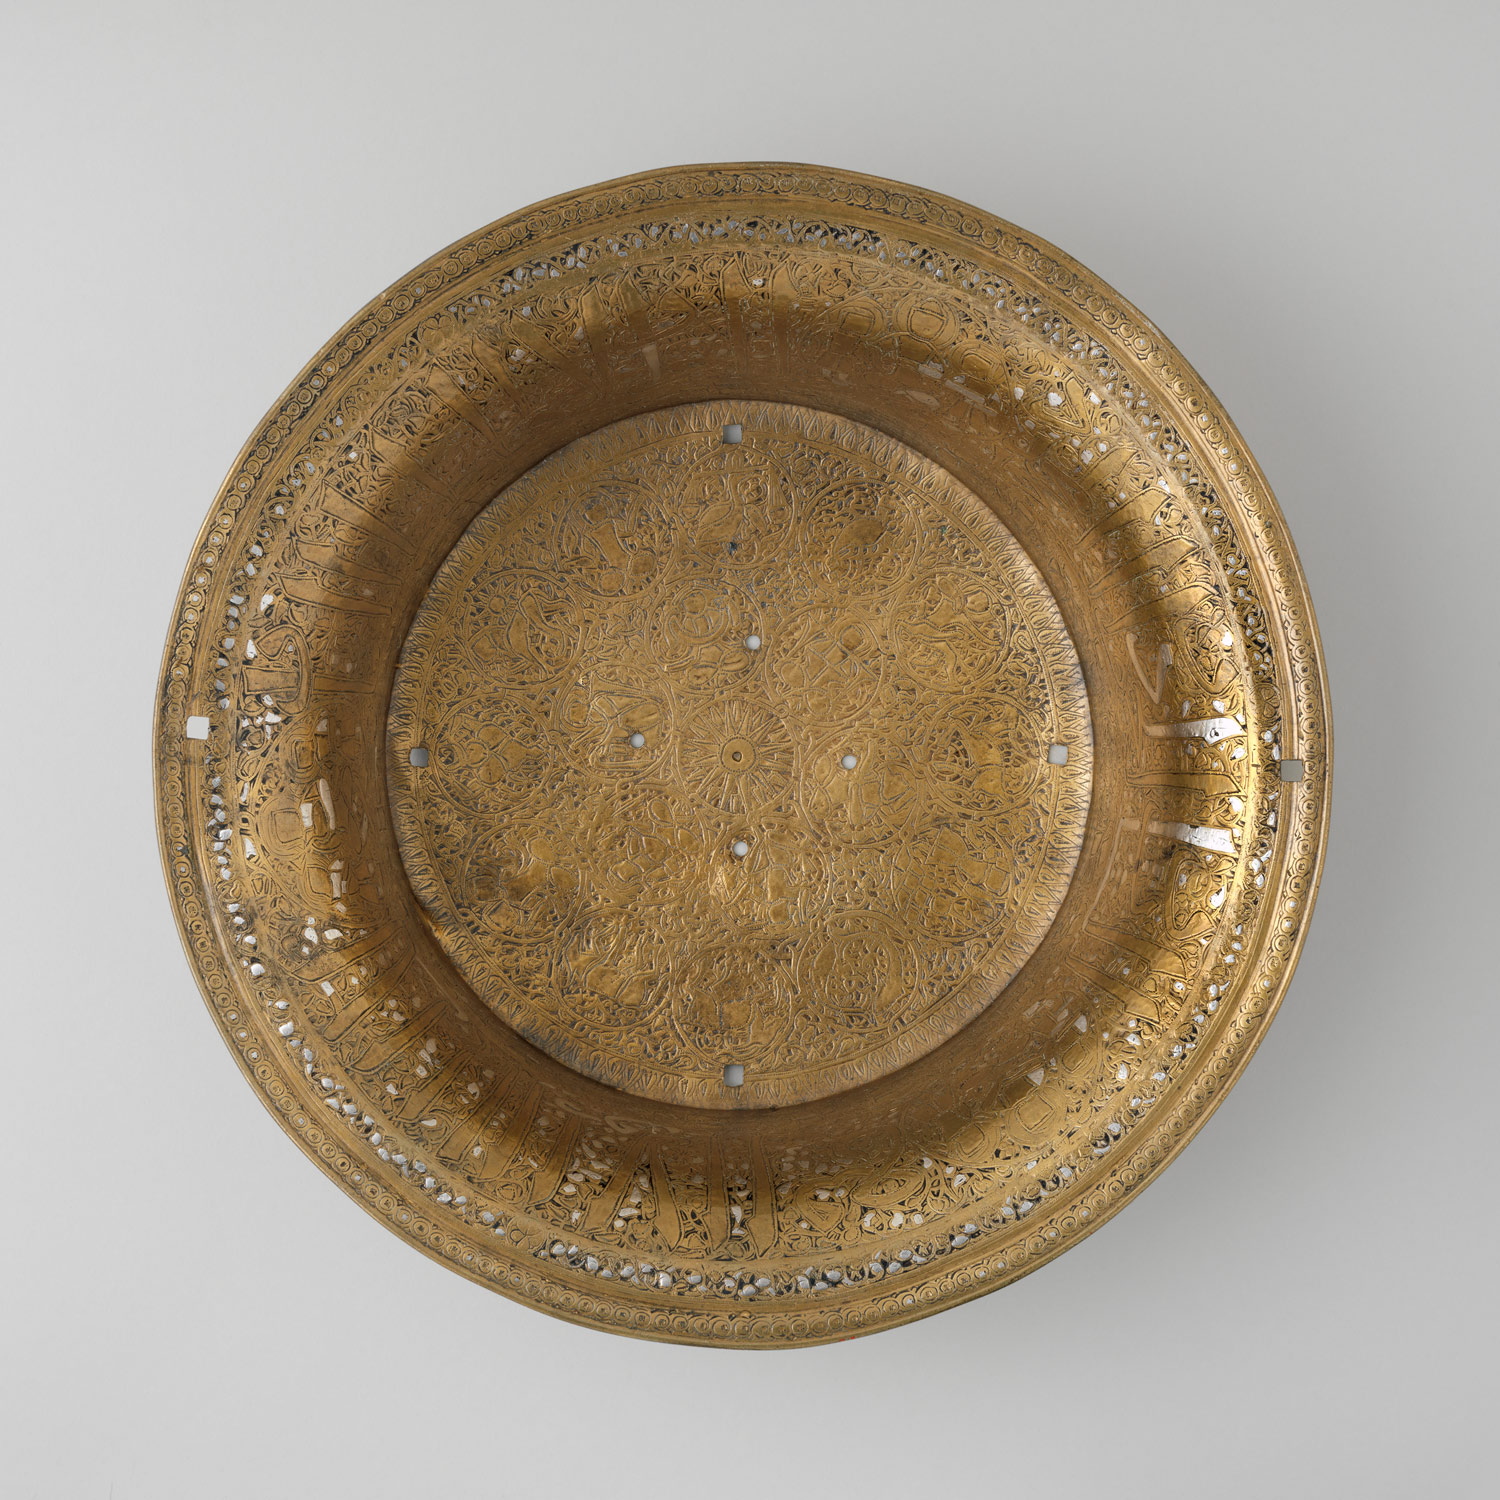 Basin with Zodiac signs and royal titles